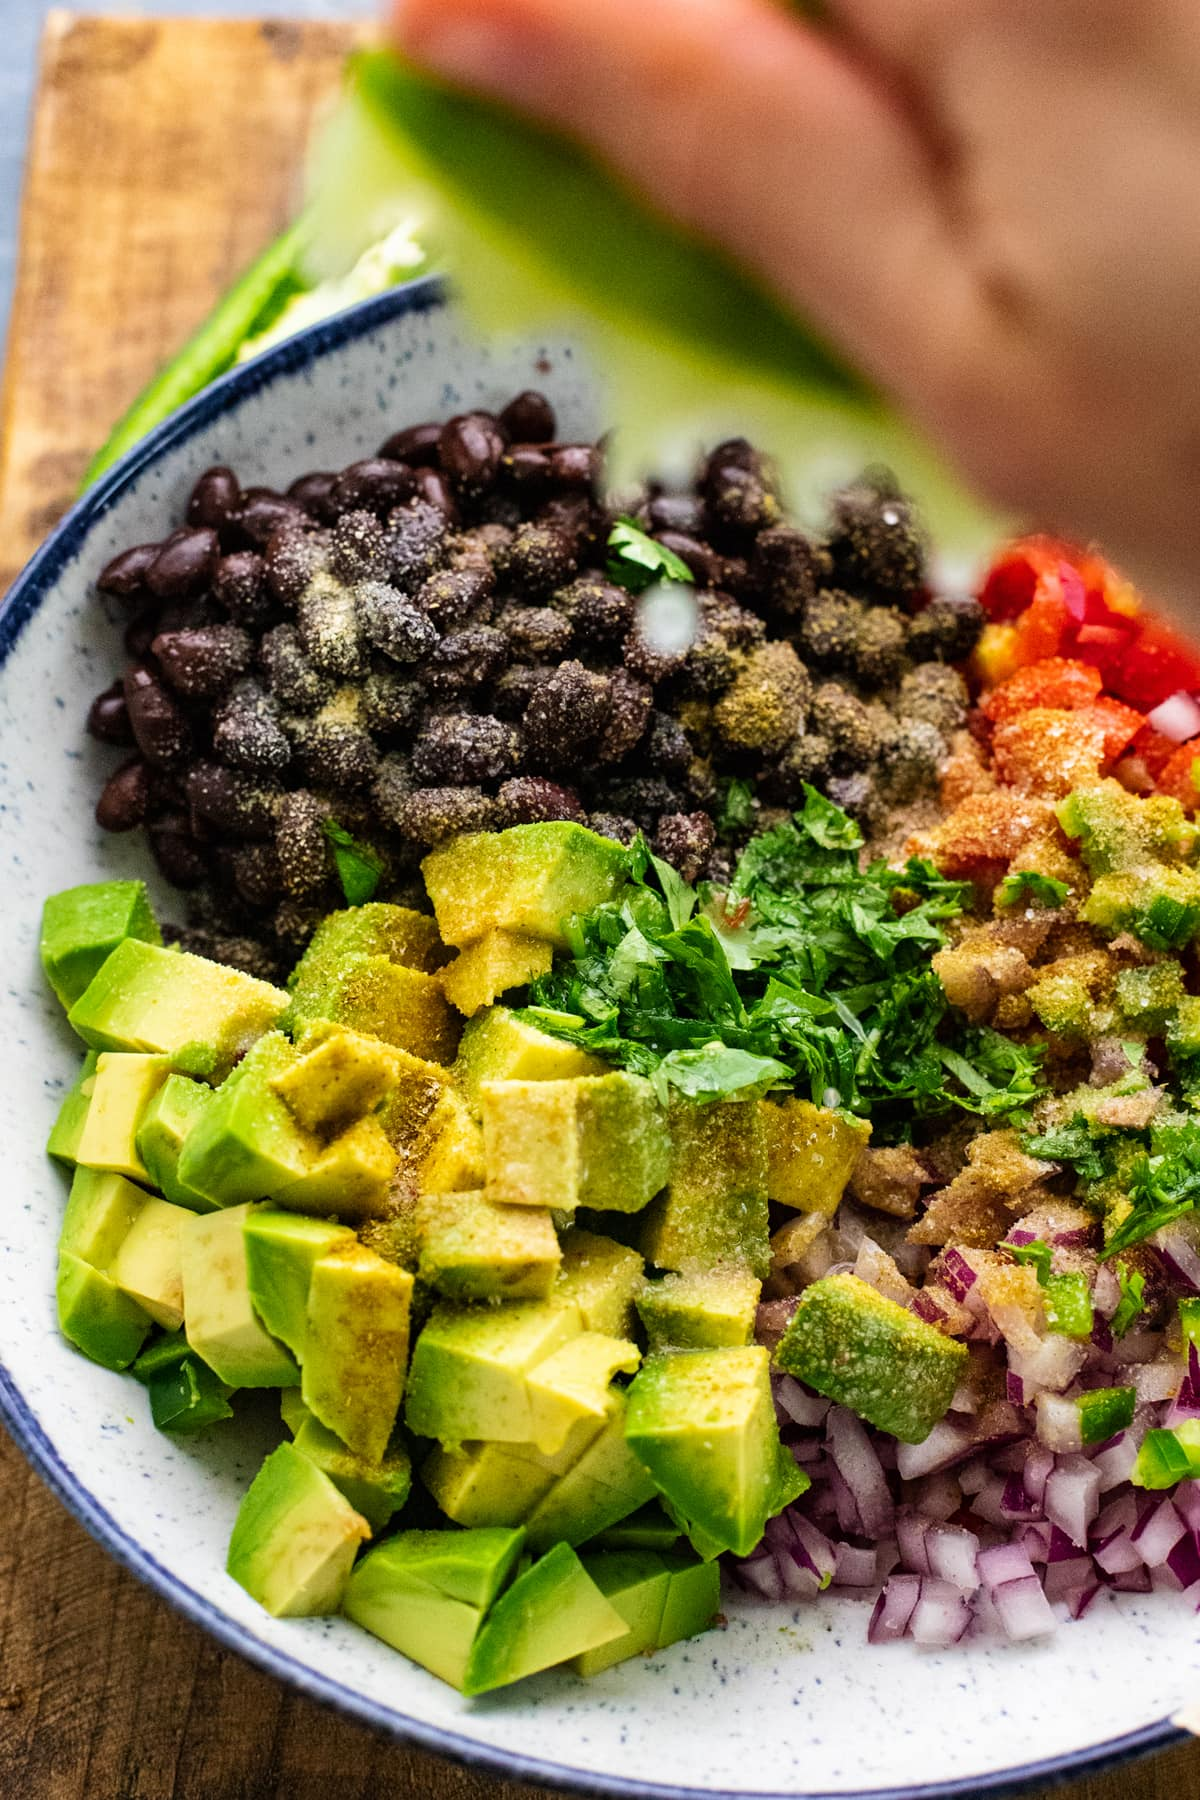 hand squeezing lime over bowl with black bean salsa ingredients in it.